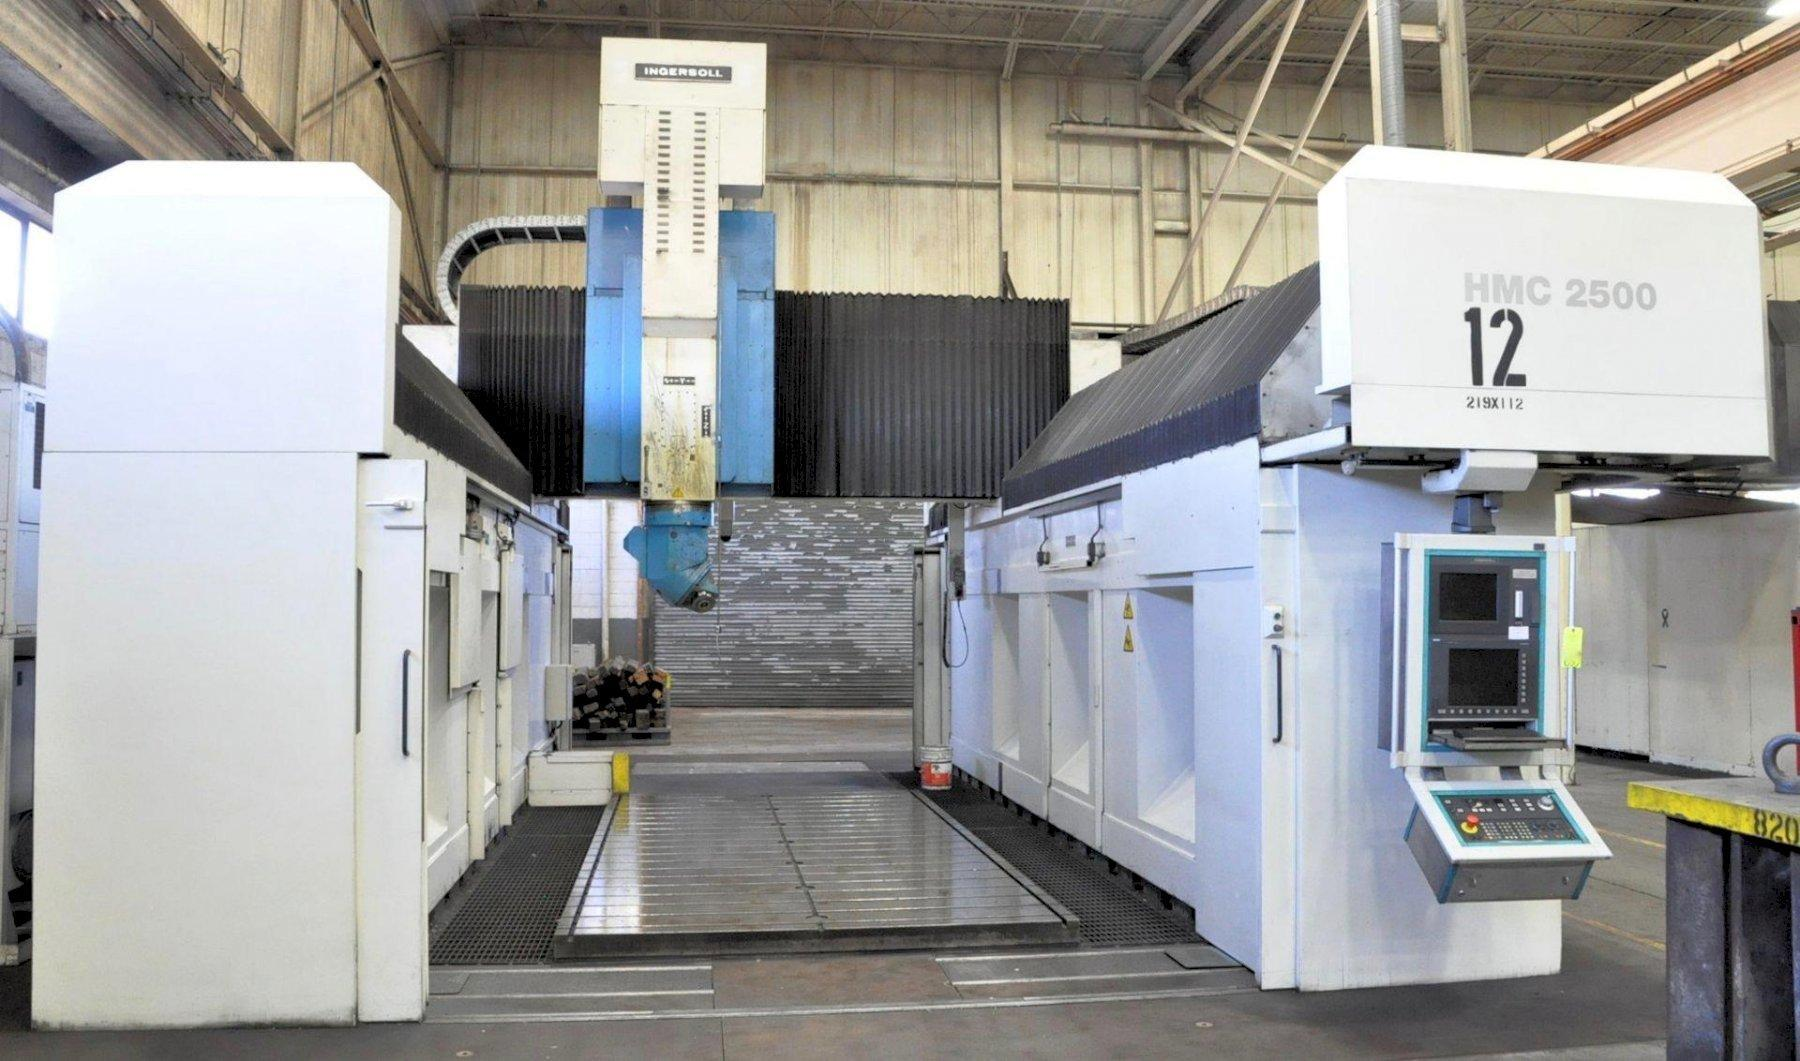 "Ingersoll Model HMC-2500, 5-Axis Gantry Type High Speed CNC Vertical Machining Center, 197"" x 98"" Table Size, 226"" X-Axis, 111"" Y-Axis, 59"" Z-Axis, 67"" Height Under Spindle, Automatic Spindle Changer, Siemens Sinumerik 840D CNC Controller, Oil Cooler, Chip Conveyor, 2001, (2) Avail"